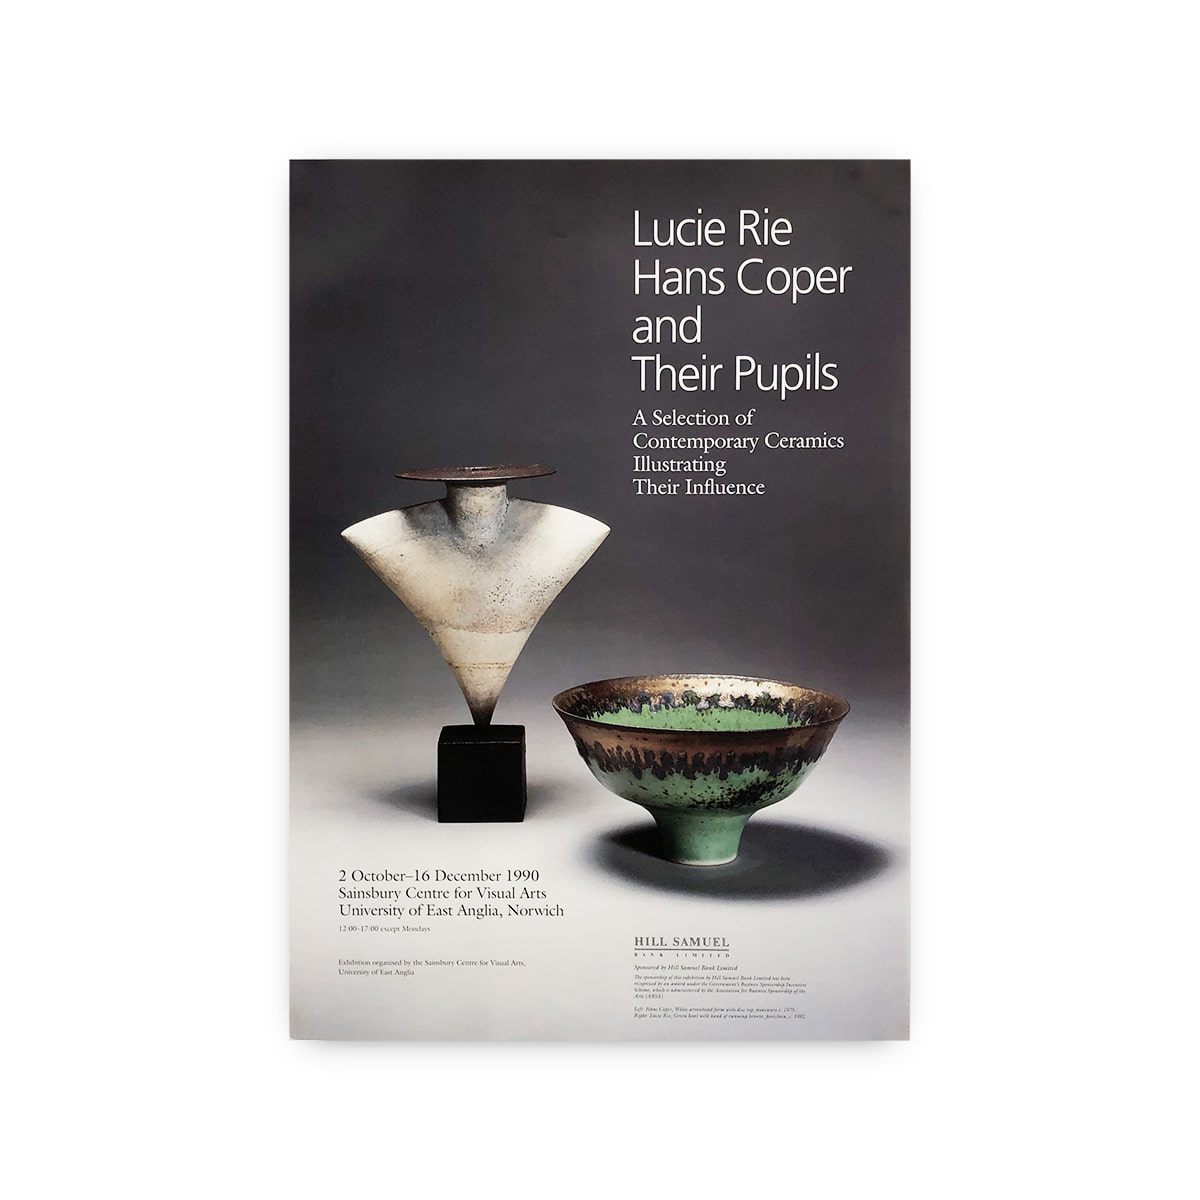 Lucie Rie, Hans Coper & Their pupils 1990 Art Exhibition Poster